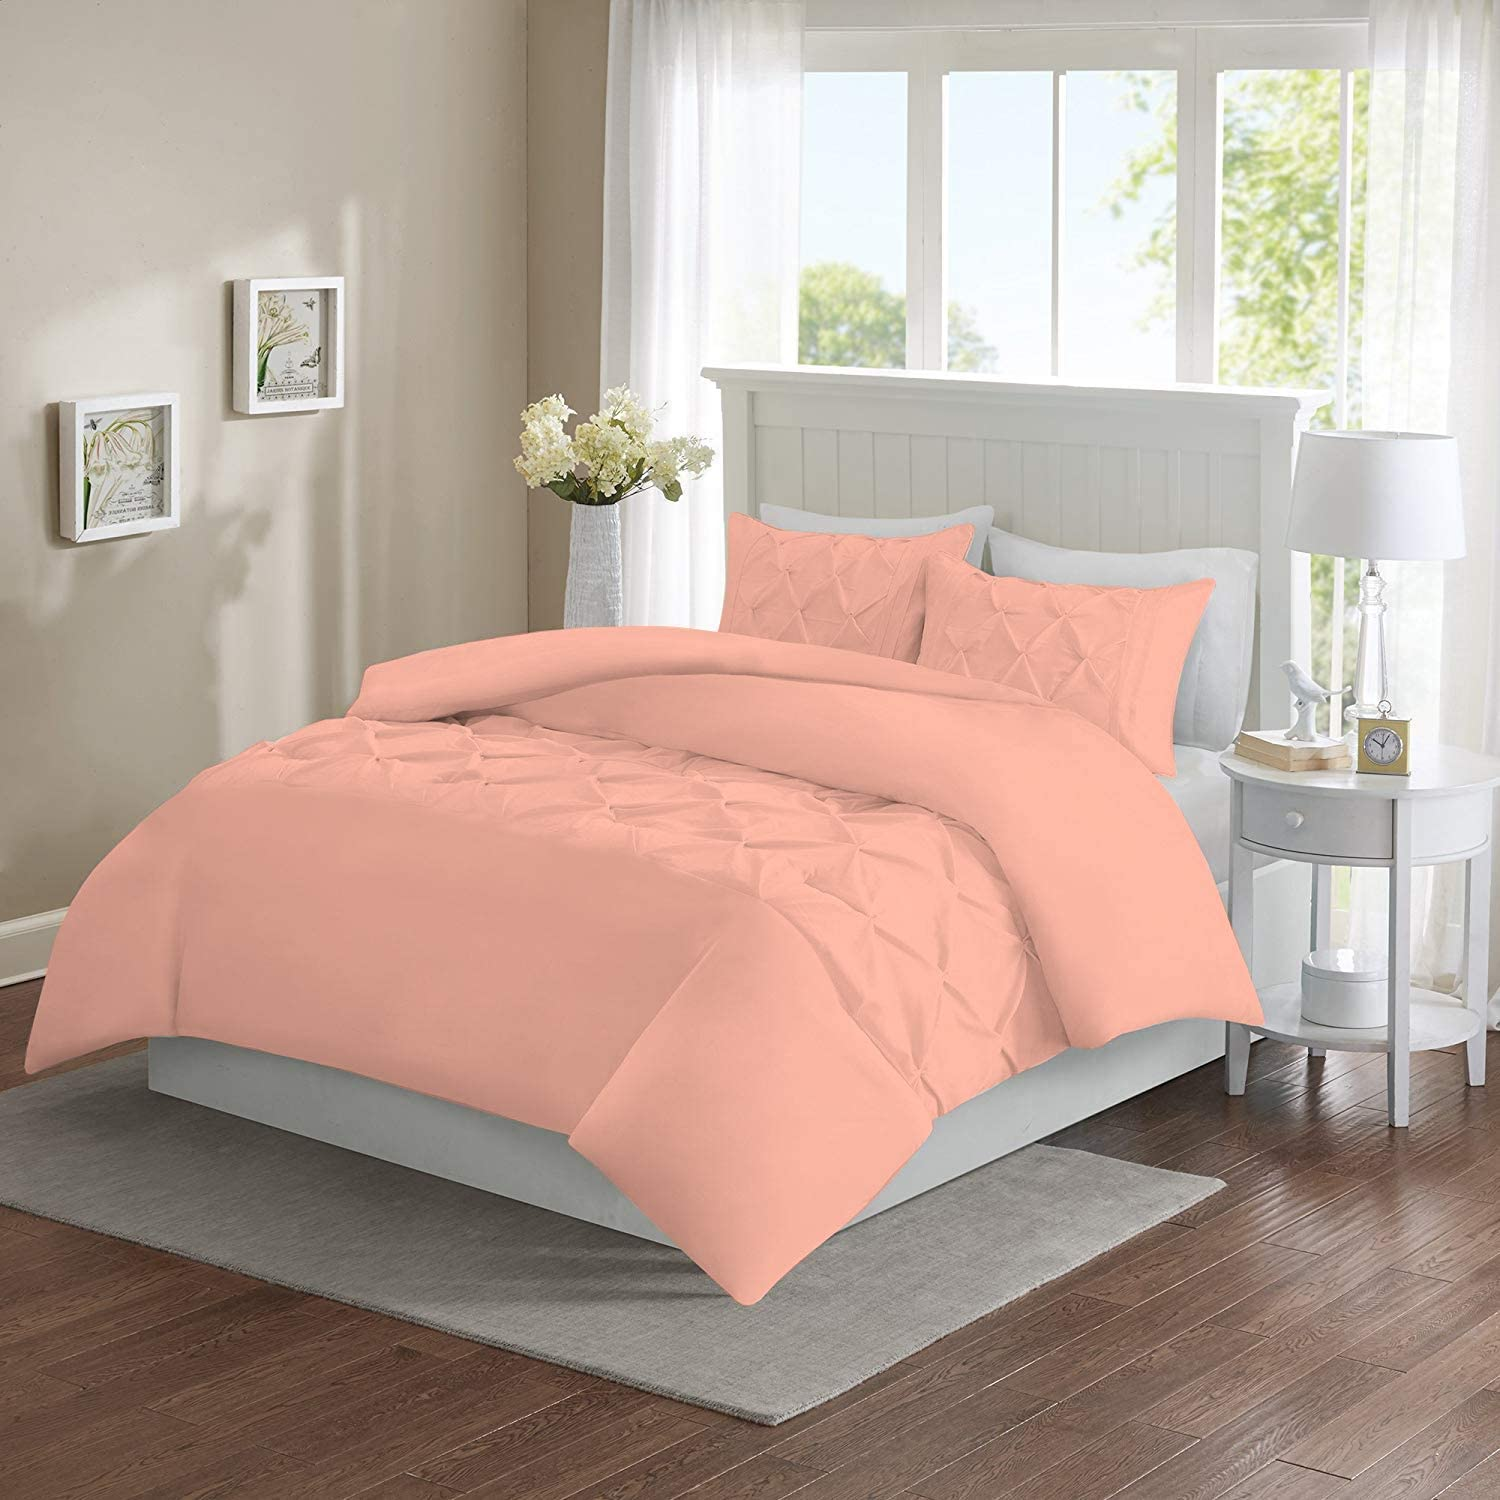 1Sleep2Sheep 3 Piece Free shipping New Long-awaited Half Pinch Duvet Pleated Cover Zipper with